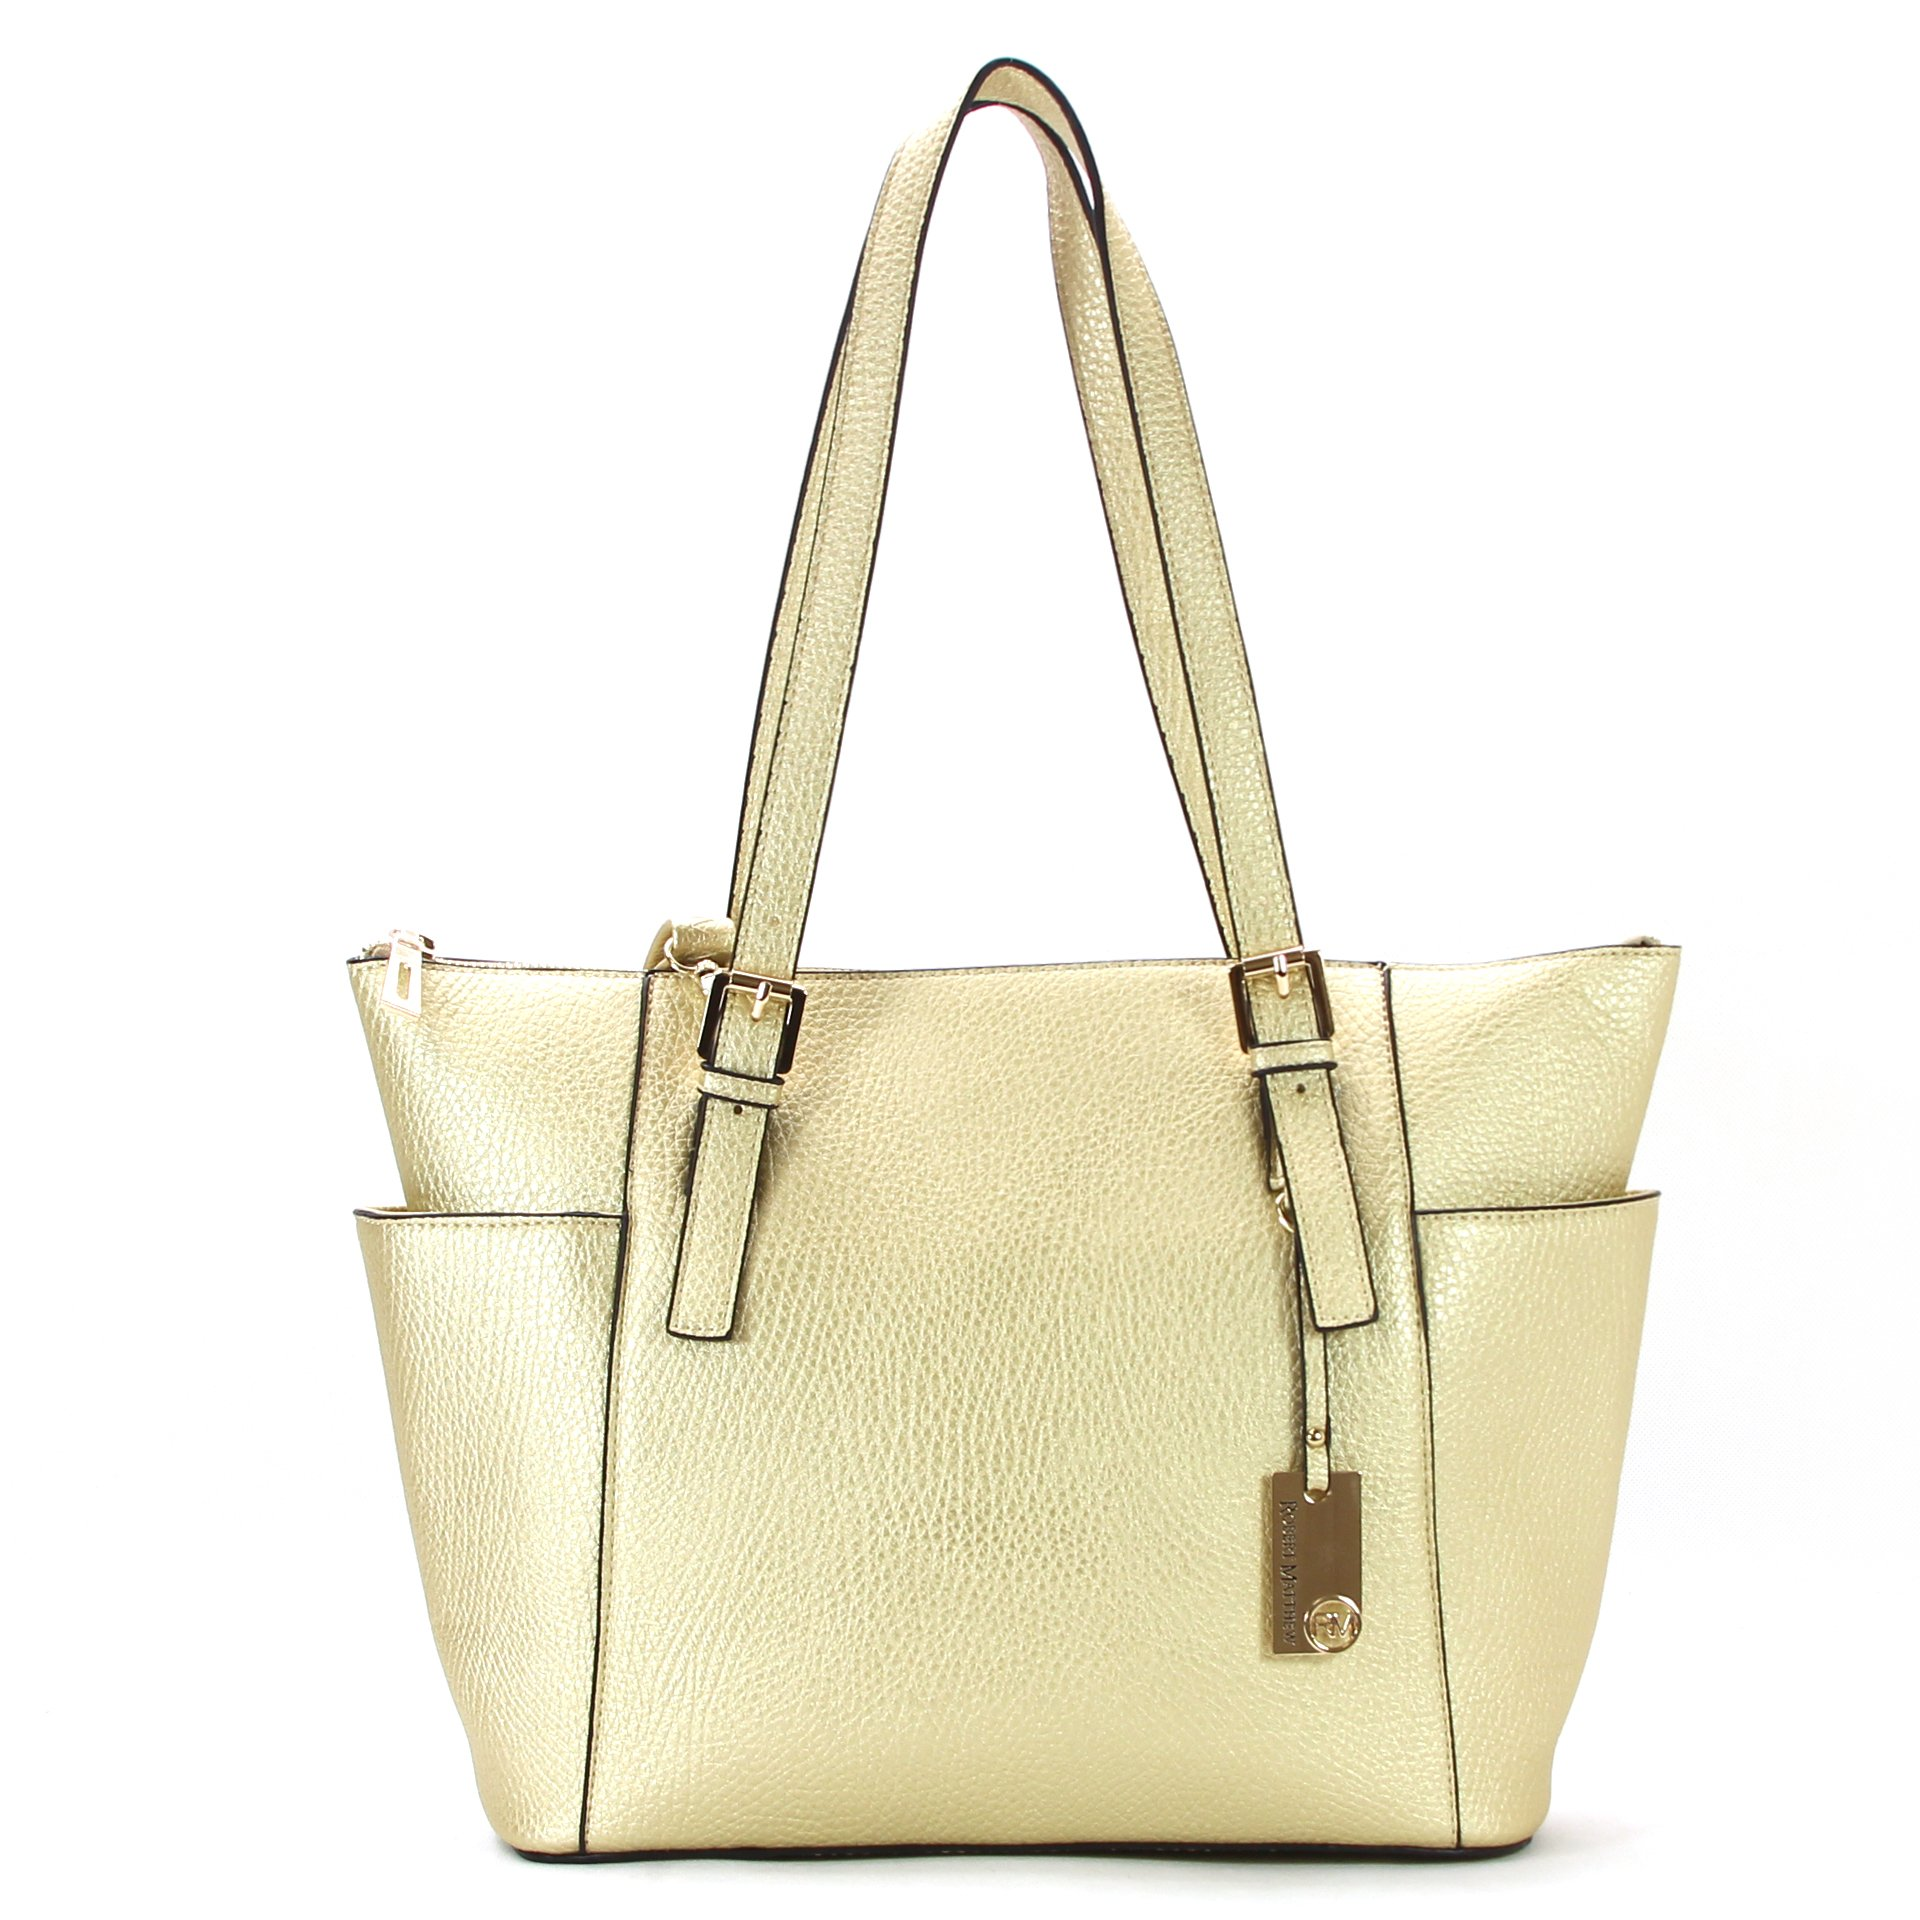 Amazon Prime Deals - Robert Matthew Fashion Khloe Womens Tote Bag, Designer Gold Pu Leather Purses